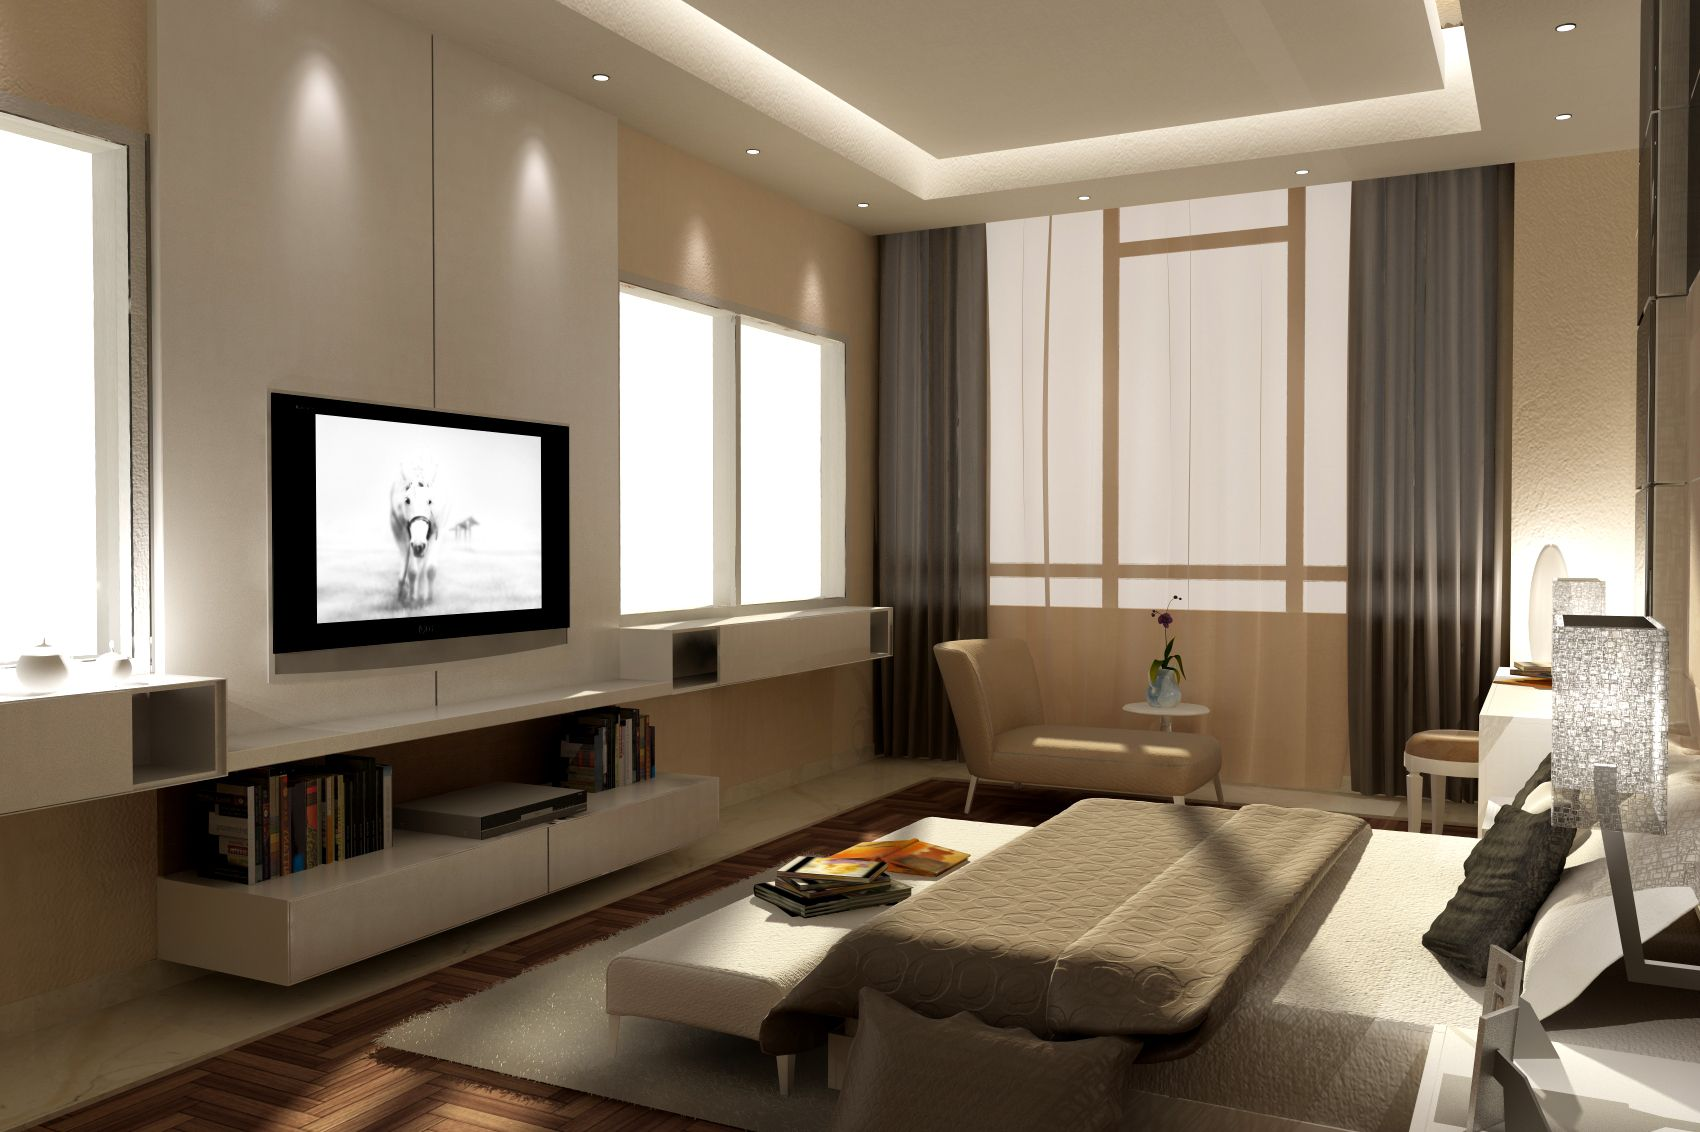 Bedroom modern bedroom interior design 3d max 3d for 3d interior design of living room